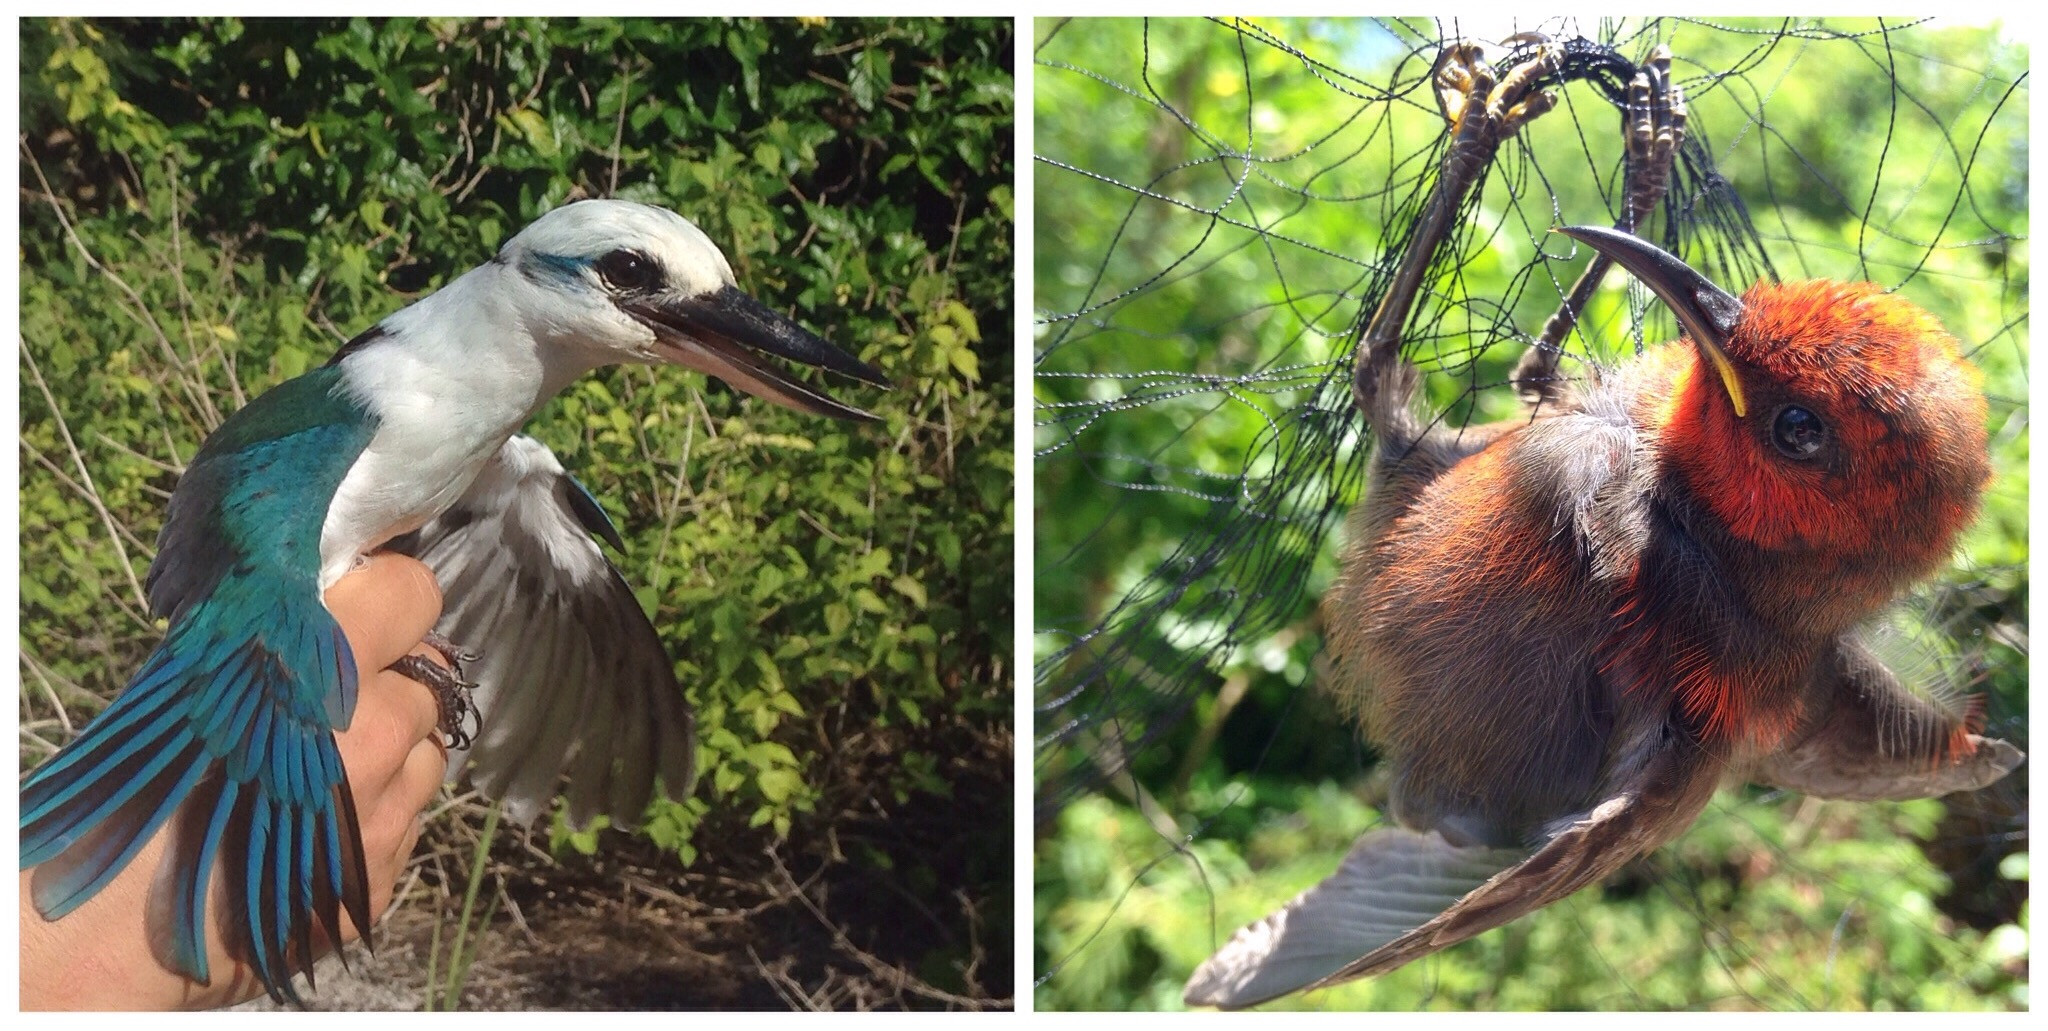 collared kingfisher and a juvenile micronesian honeyeater